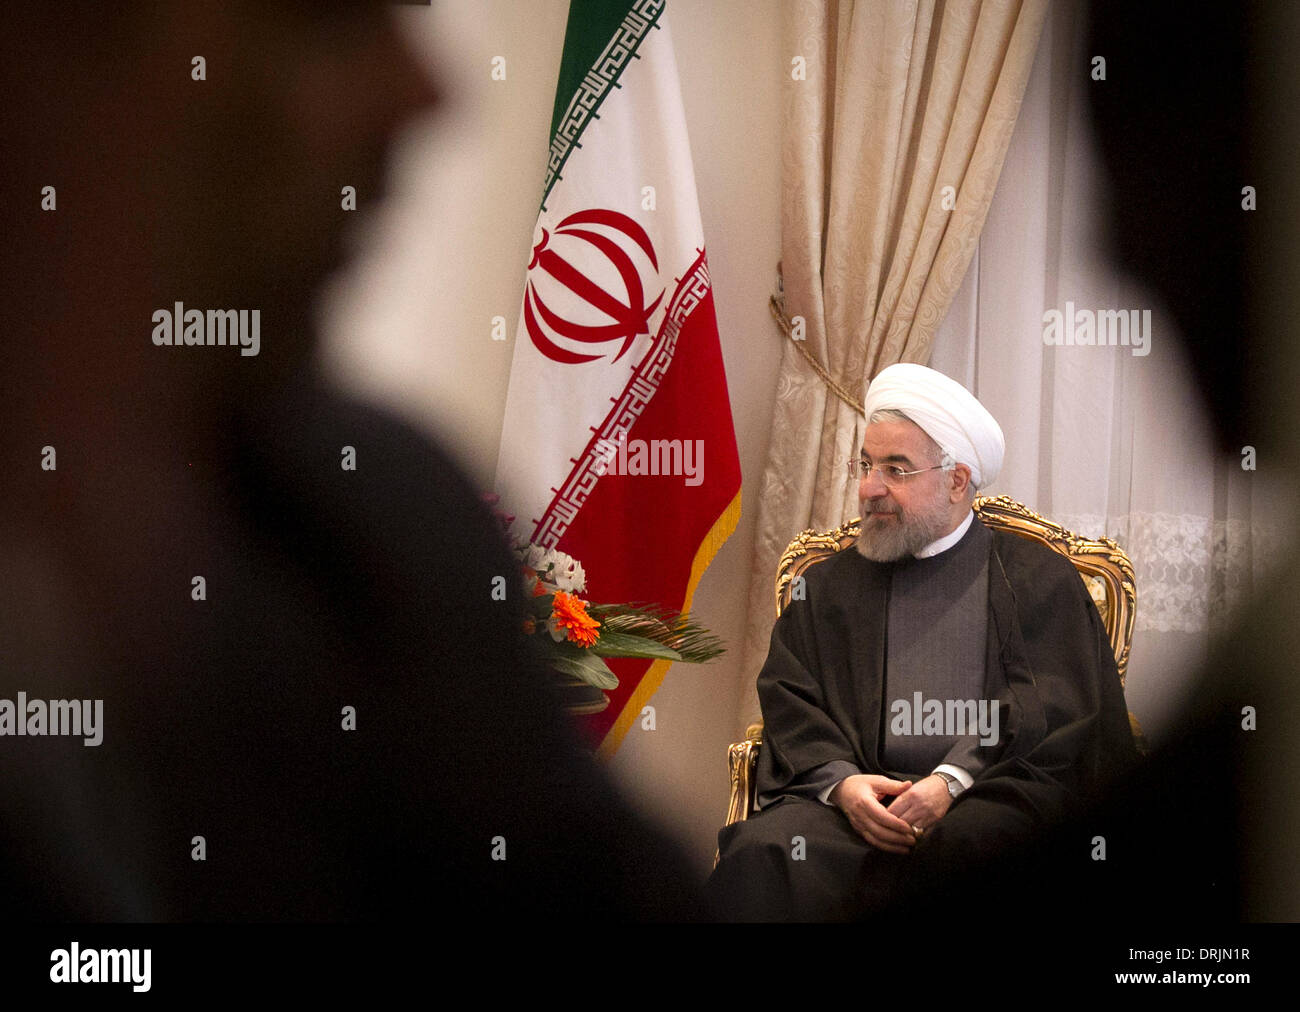 Tehran, Iran. 27th Jan, 2014. Iranian President Hassan Rouhani listens during his meeting with South Korean National Assembly Speaker Kang Chang-hee at presidential palace in Tehran, capital of Iran, on Jan. 27, 2014. Rouhani called for closer economic ties with South Korea here on Monday, semi-official Fars news agency reported. Credit:  Ahmad Halabisaz/Xinhua/Alamy Live News - Stock Image